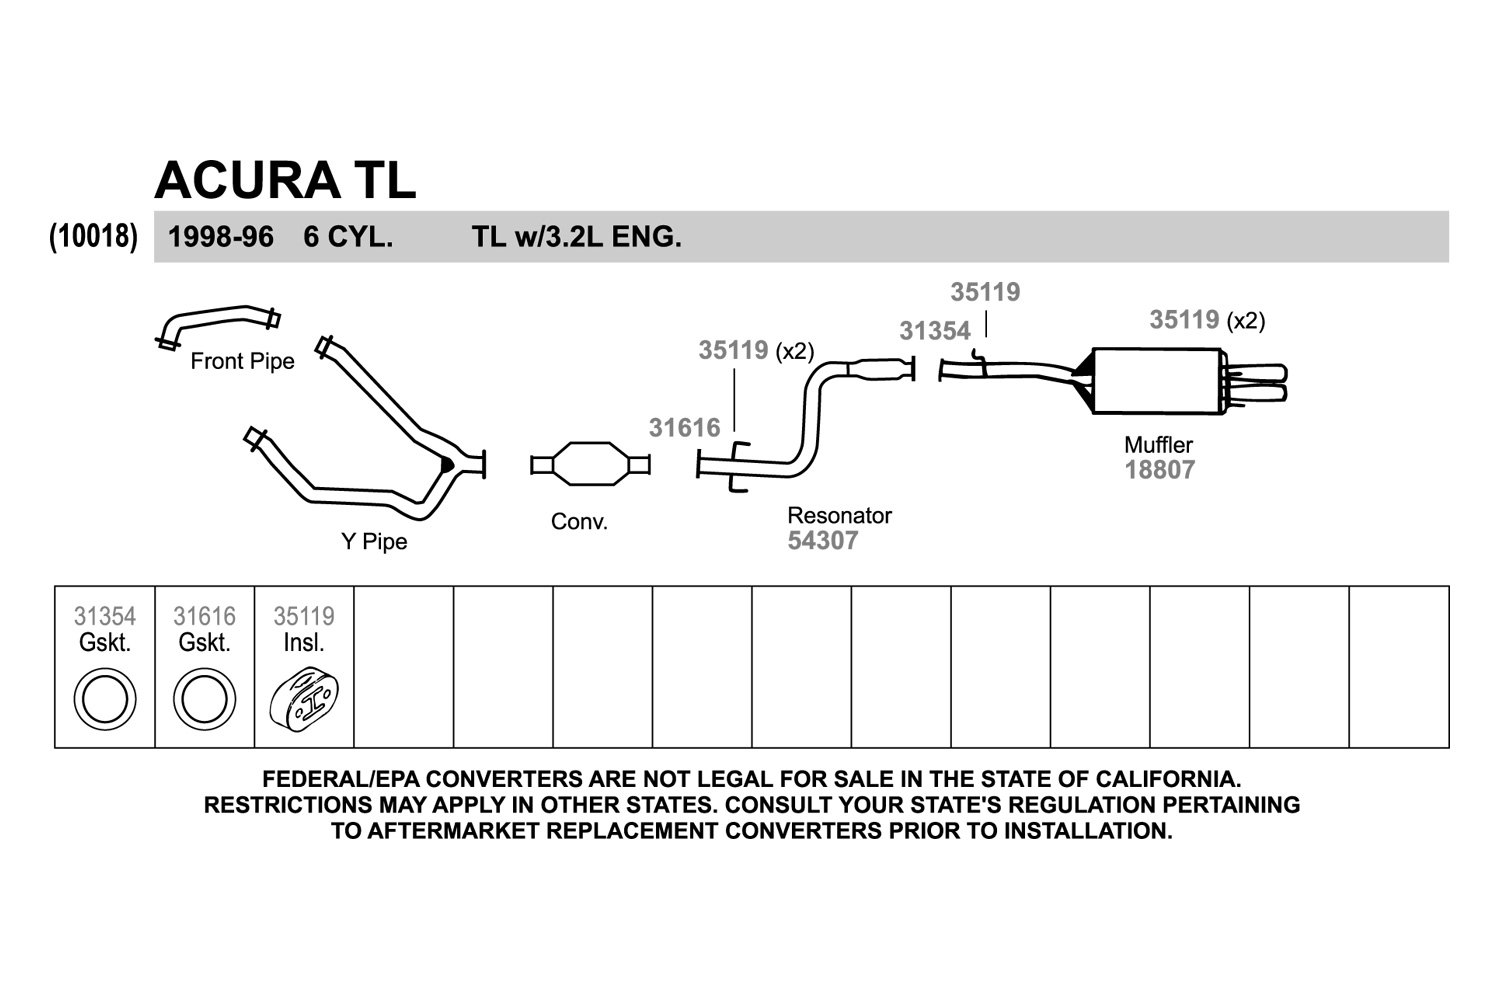 Acura Tl Exhaust Diagram Car Wiring Diagrams Explained - Acura tl exhaust system